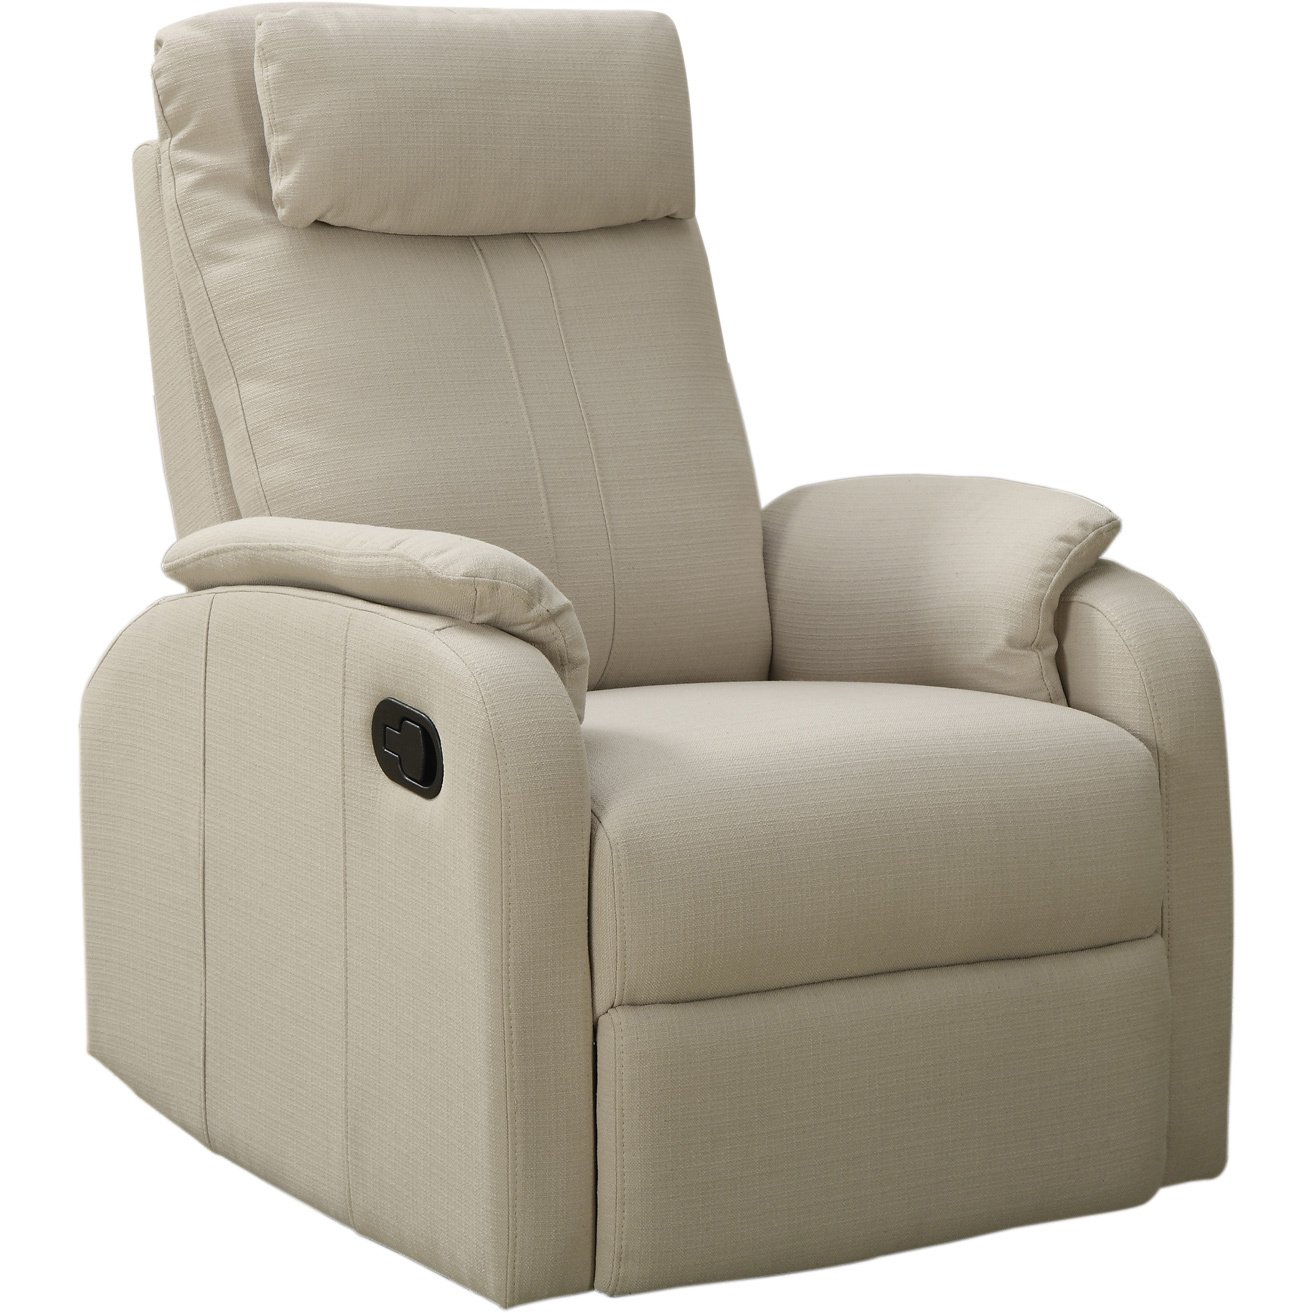 Sand Linen Fabric Swivel Rocker Recliner Within Gannon Linen Power Swivel Recliners (Image 19 of 20)